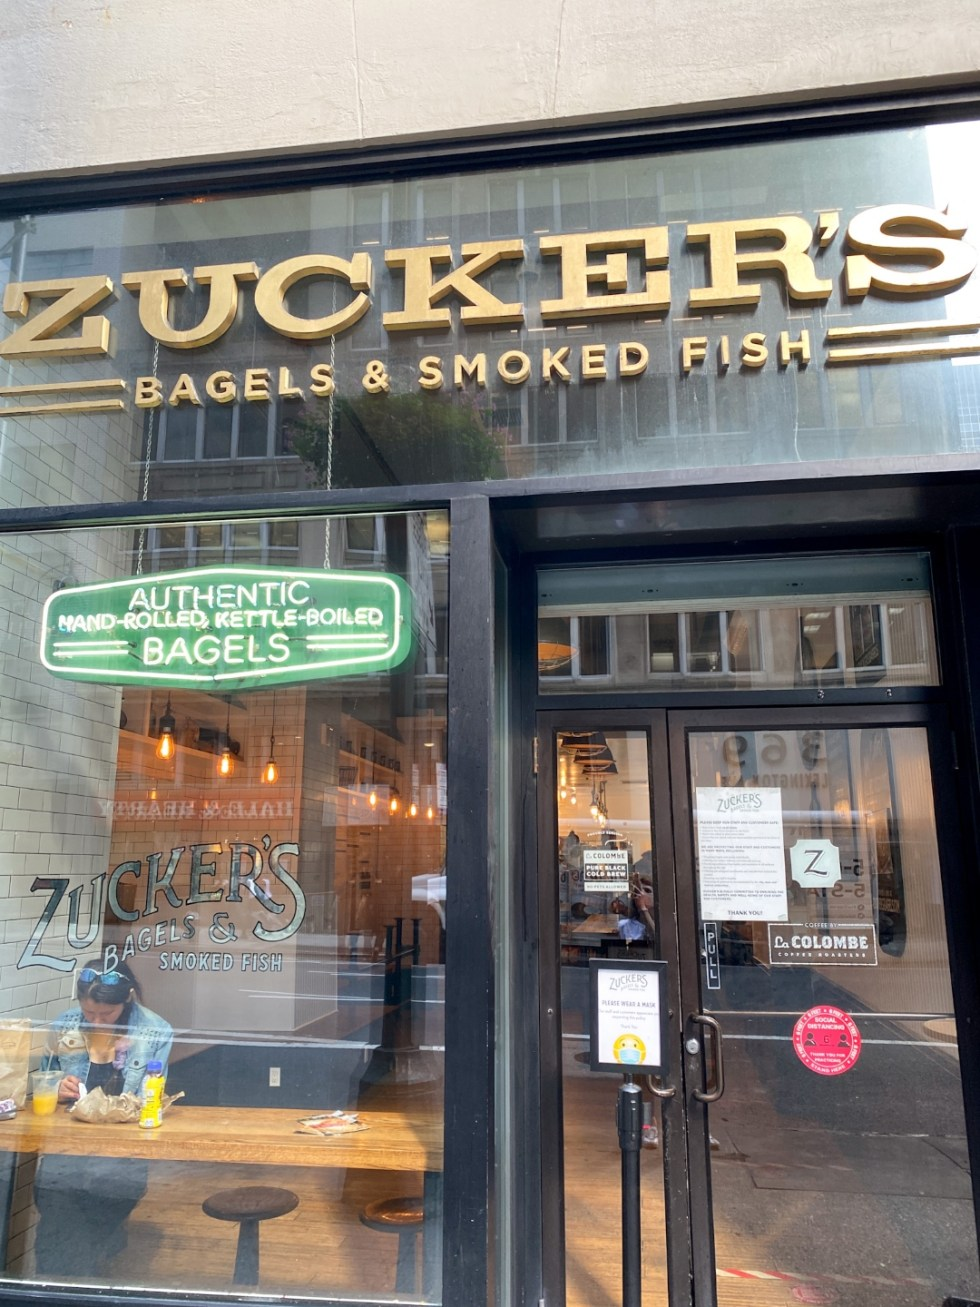 NYC Summer Weekend: Things to Do in NYC in the Summer - I'm Fixin' To - @imfixintoblog   NYC Summer Weekend by popular NC travel blog, I'm Fixin' To: image of Zucker's Bagels and Smoked Fish.